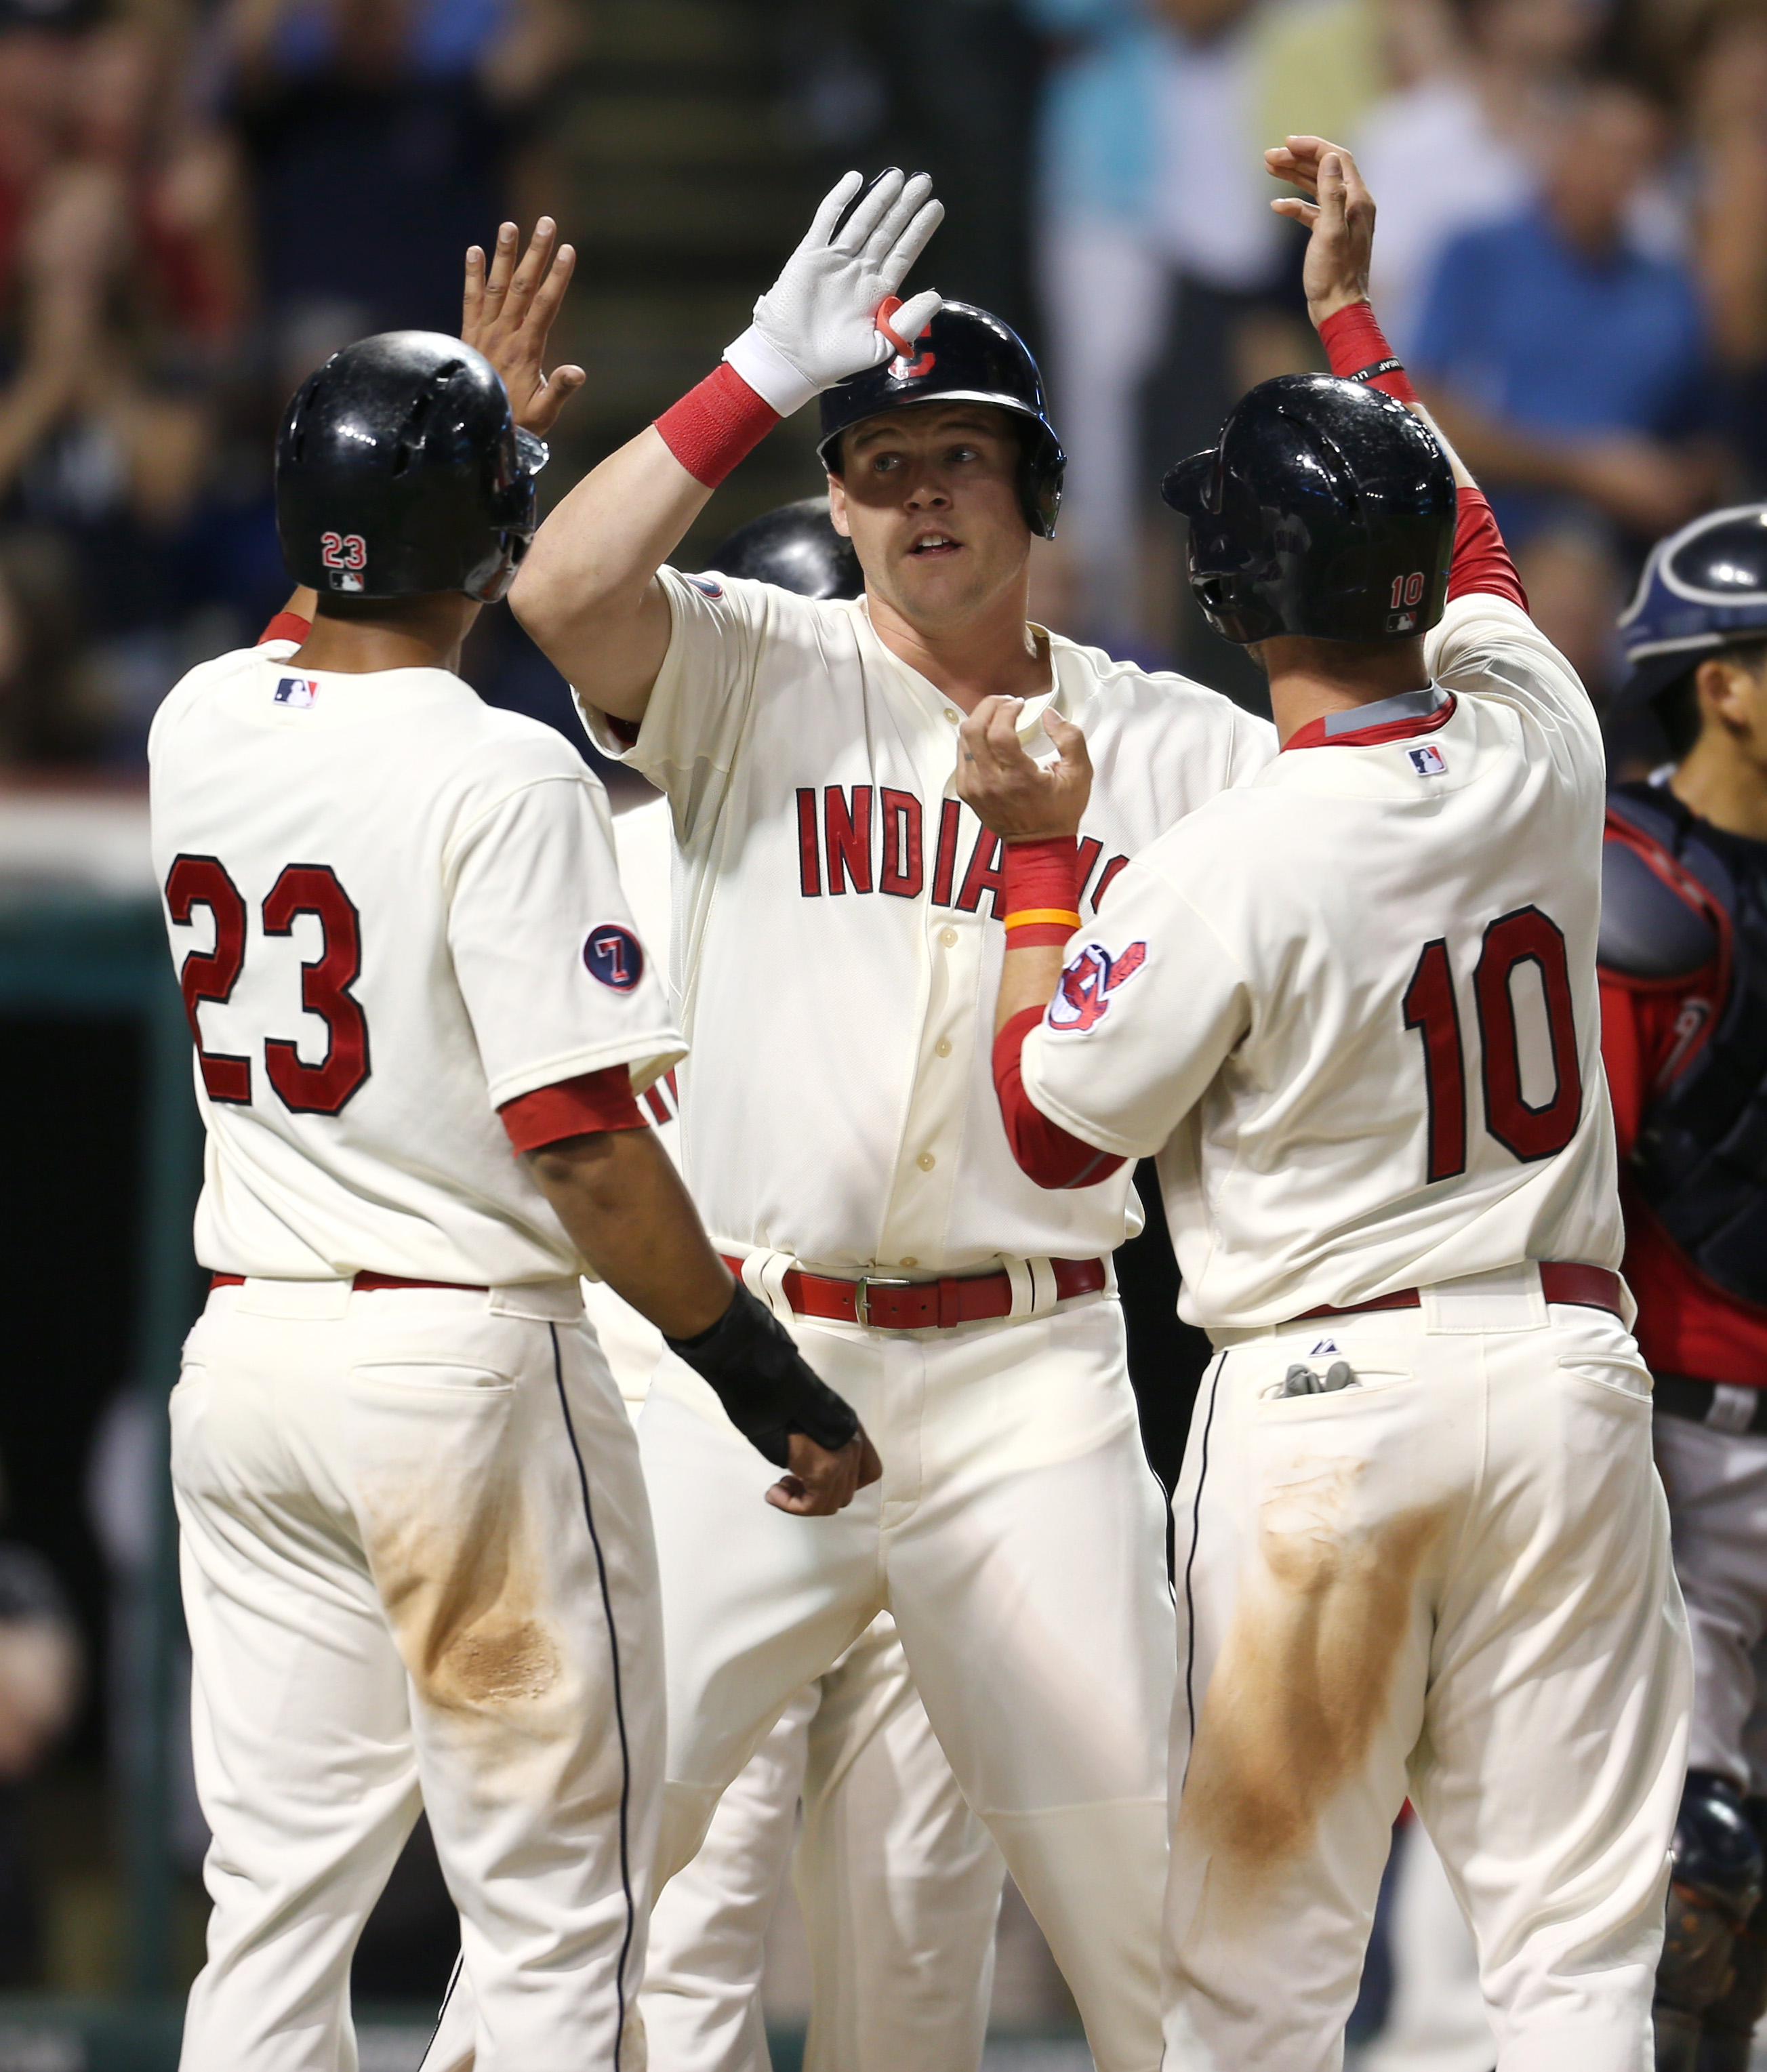 Cleveland Indians' Jerry Sands, center, is congratulated by teammates Michael Brantley, left, and Yan Gomes after hitting a grand slam off Minnesota Twins relief pitcher Blaine Boyer during the fifth inning of a baseball game, Saturday, Aug. 8, 2015, in C